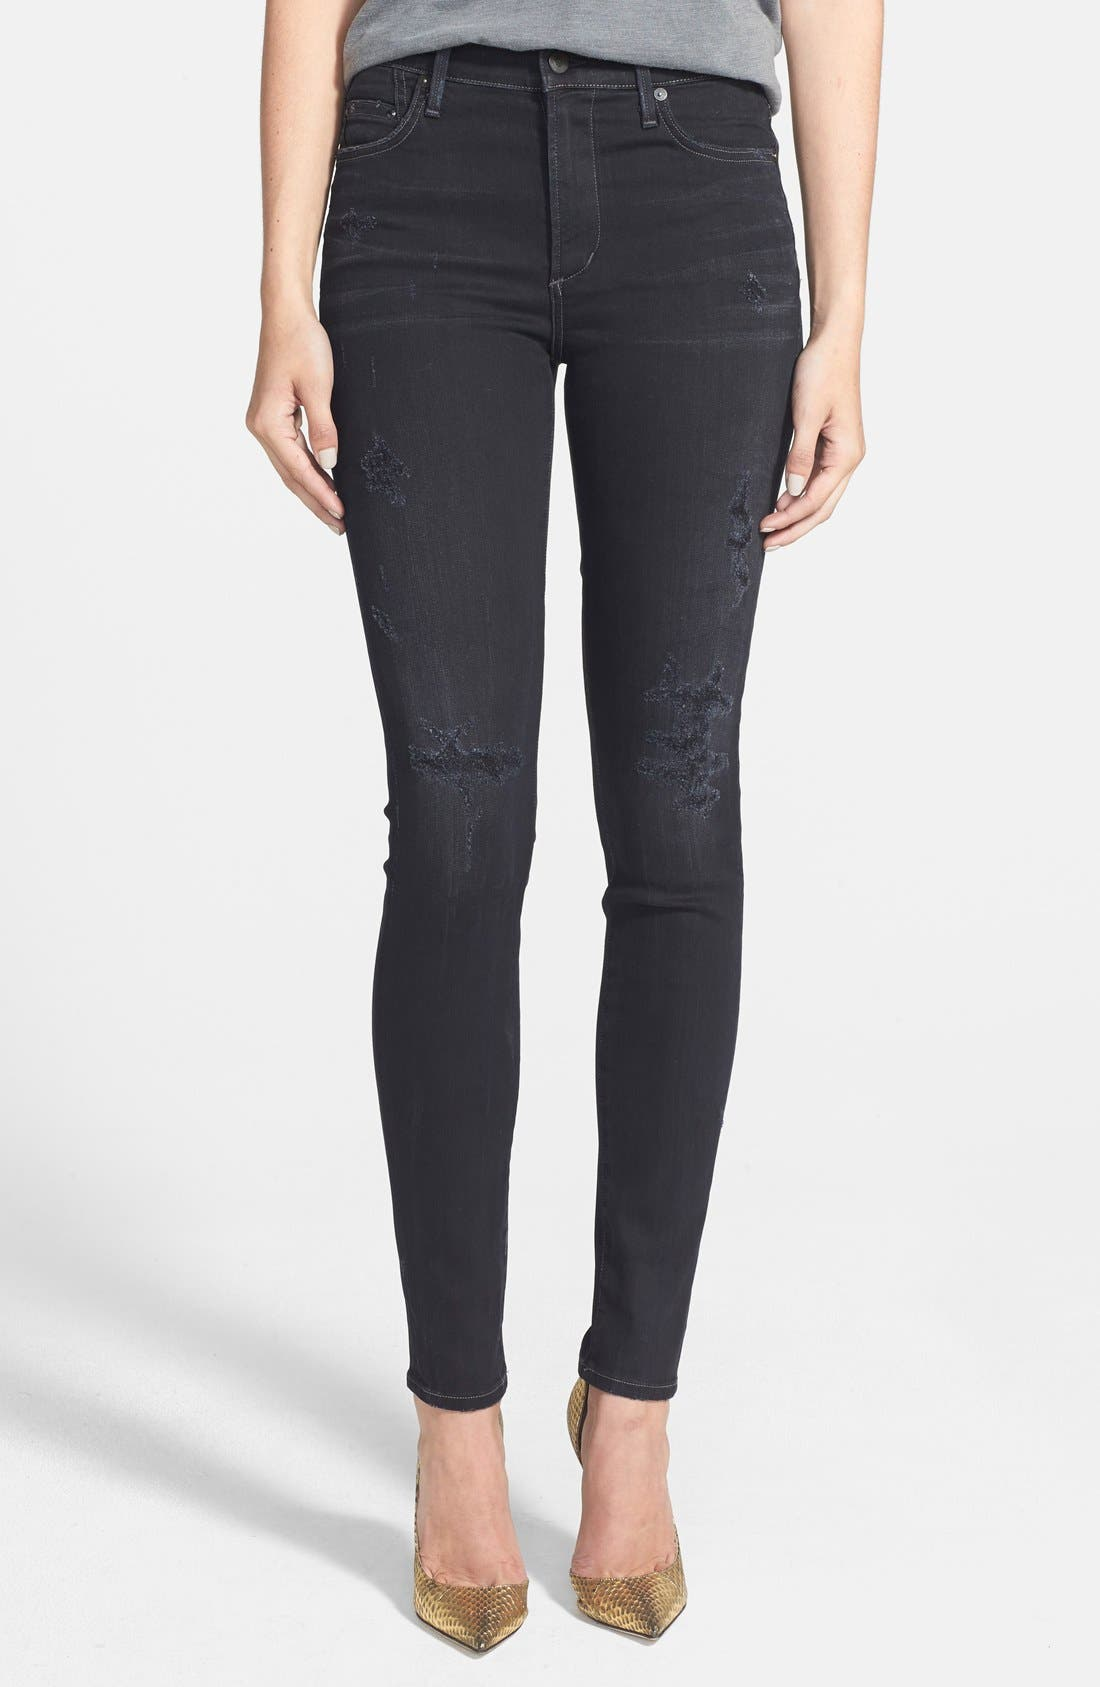 CITIZENS OF HUMANITY Rocket Distressed High Waist Skinny Jeans, Main, color, 409